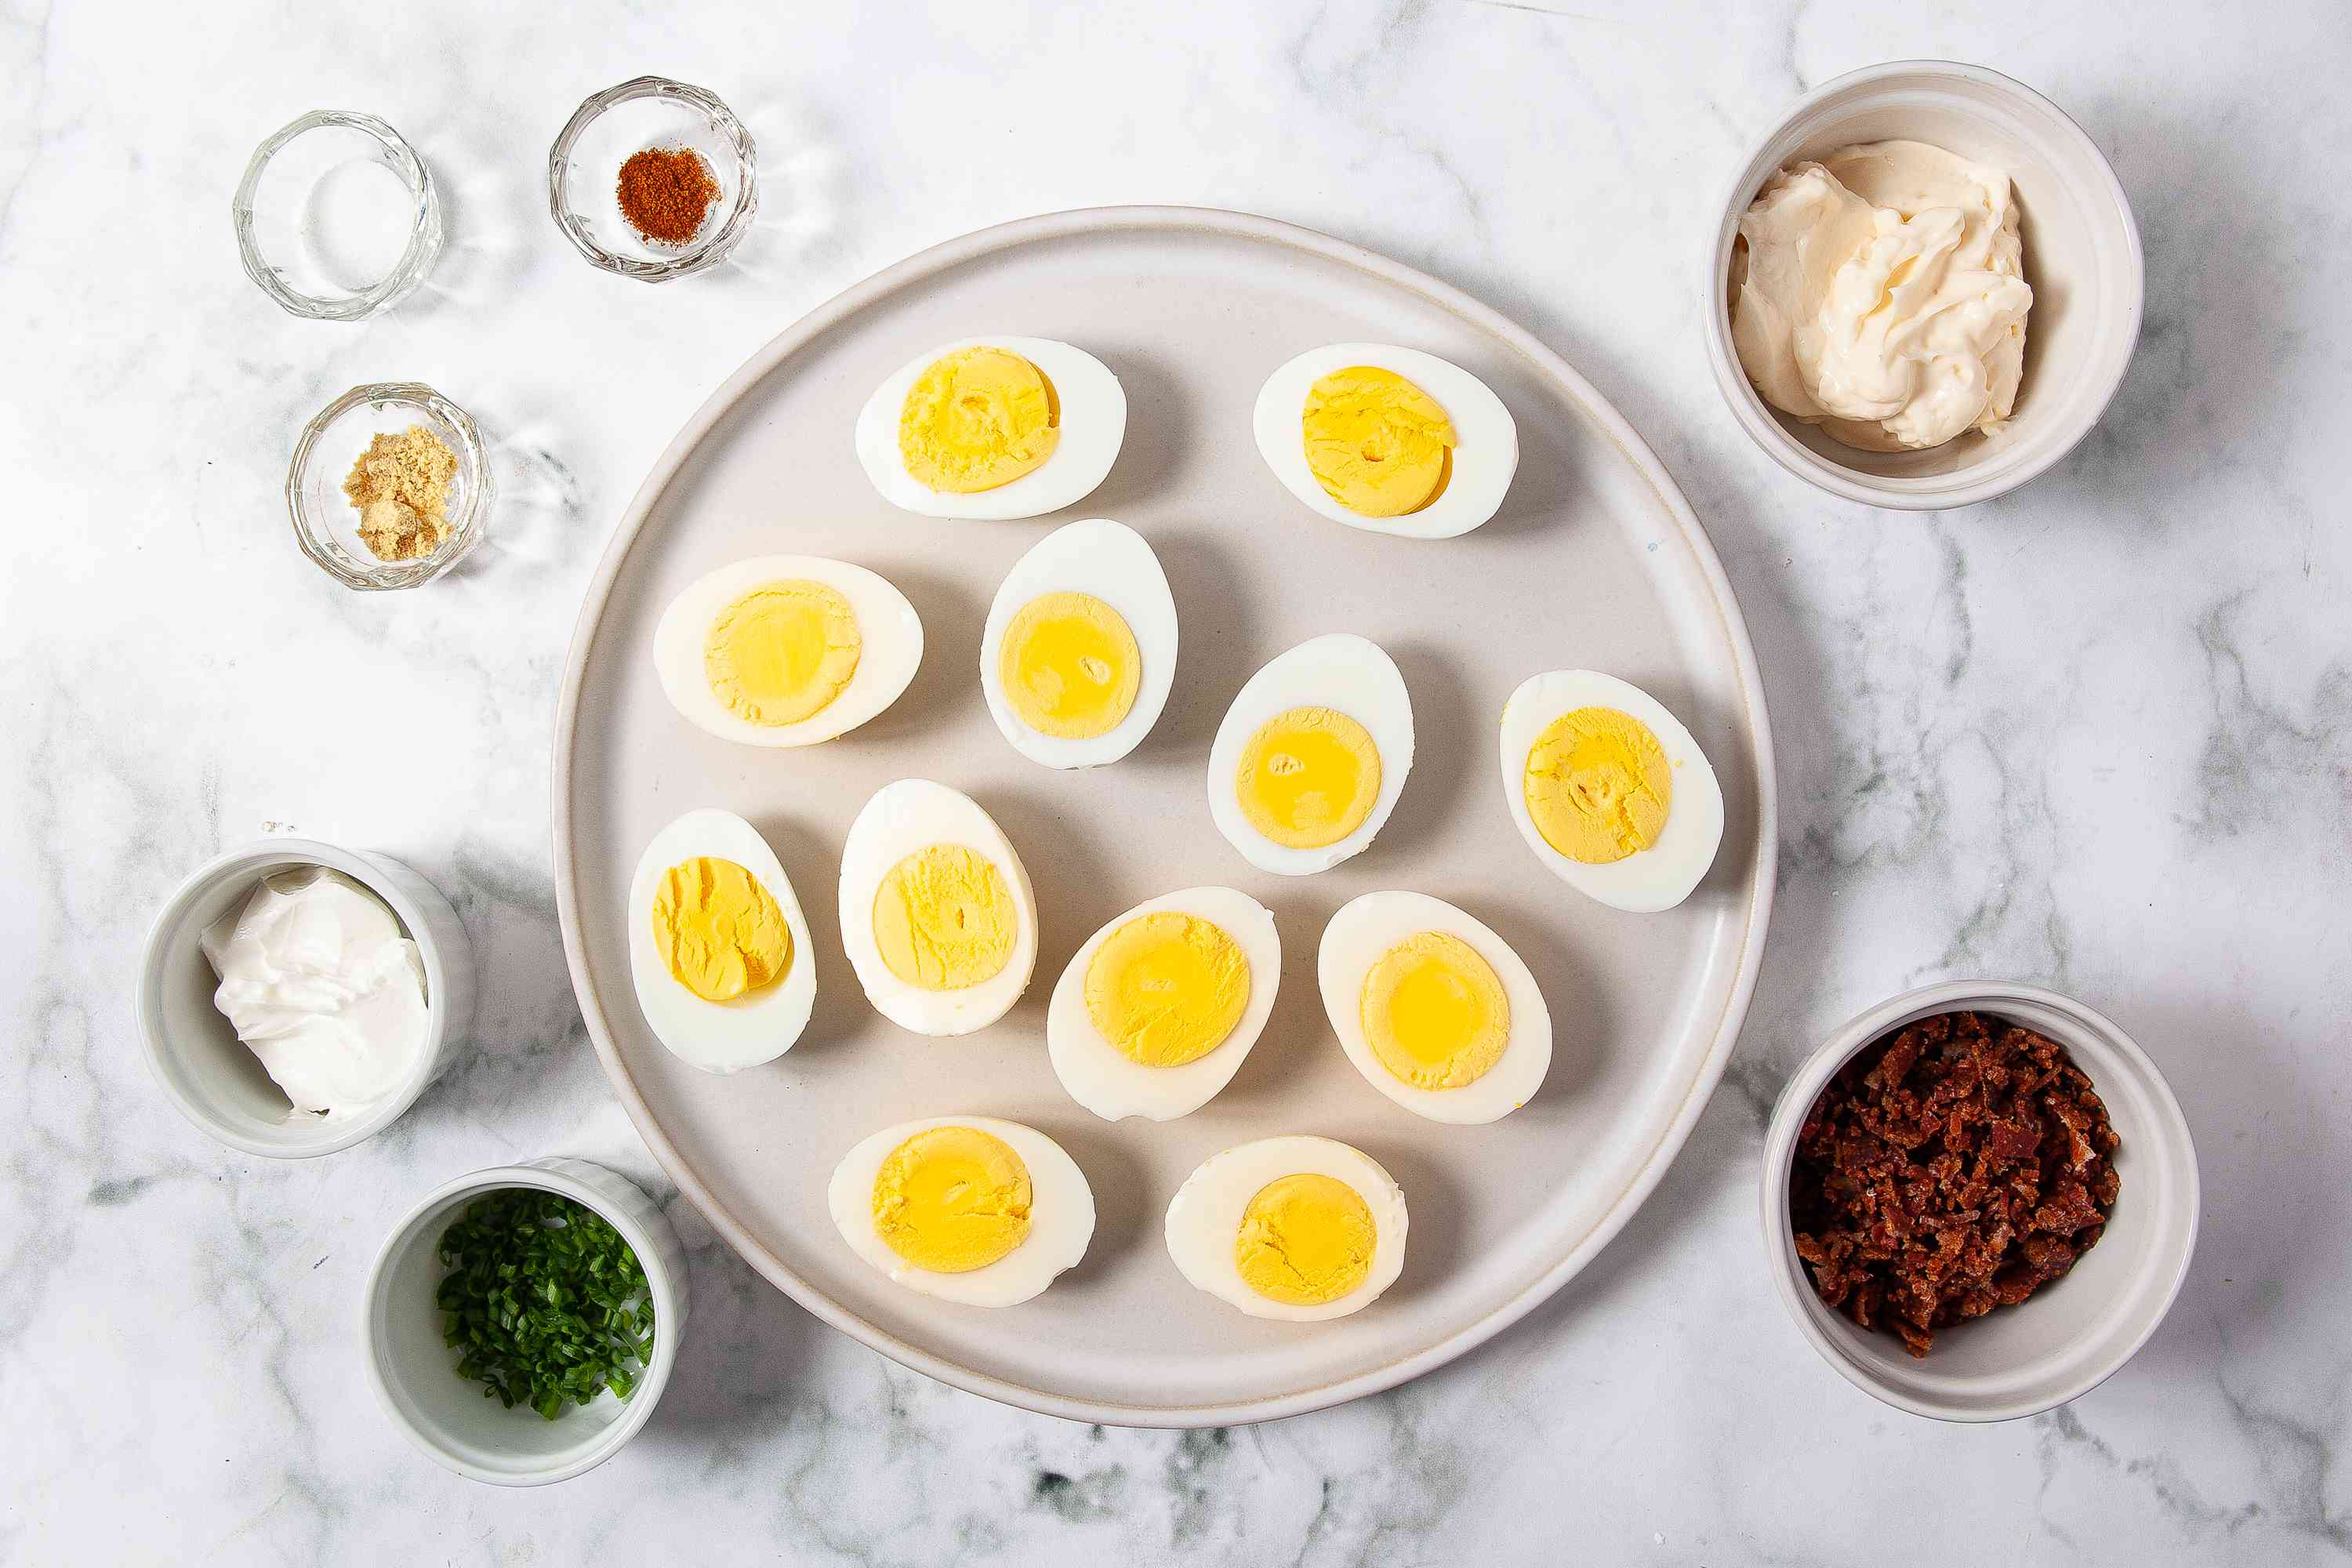 Ingredients for deviled eggs with bacon